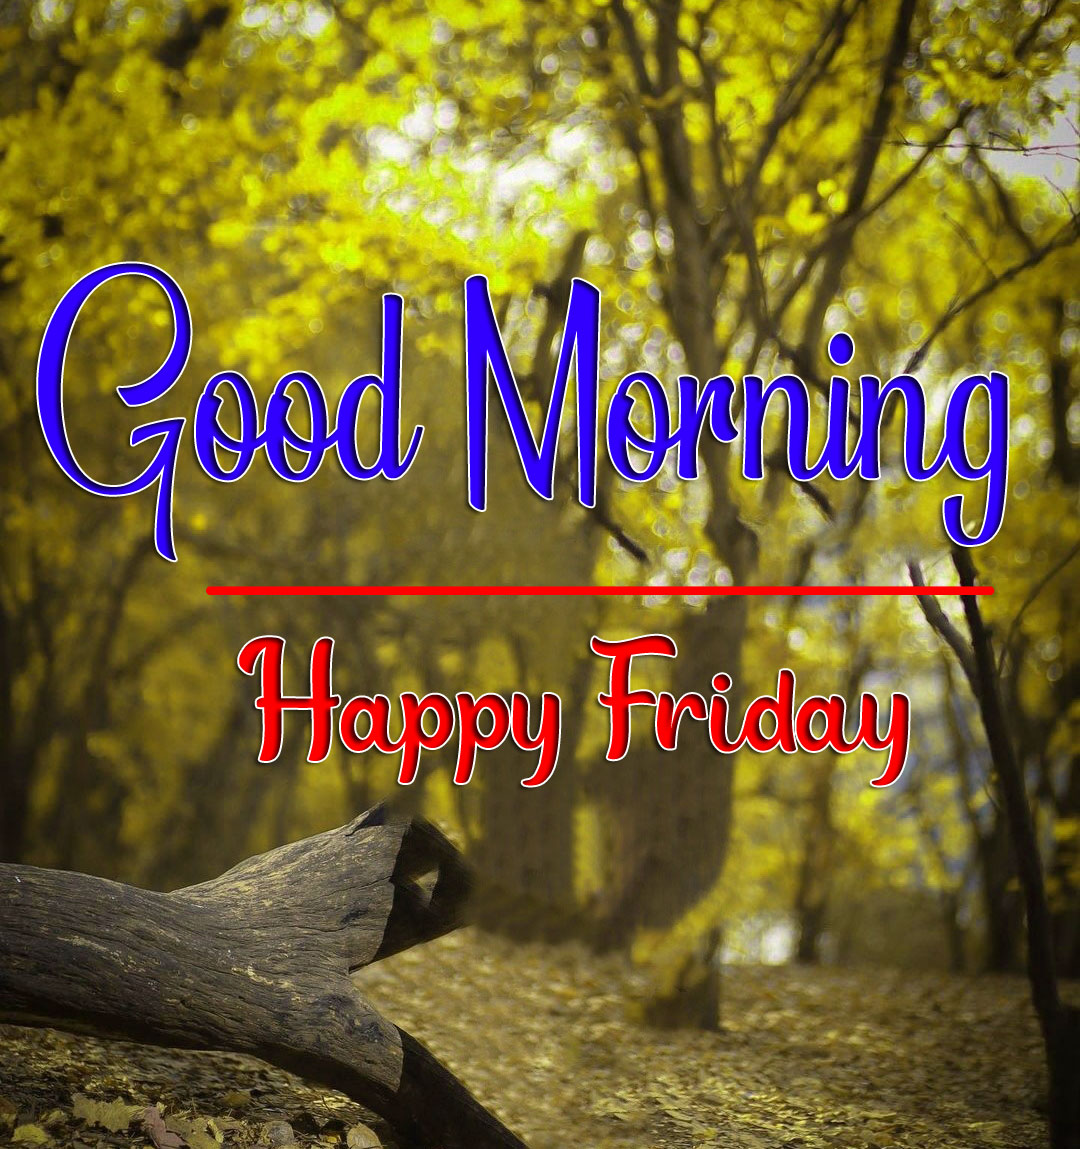 Best HD friday Good morning Images New